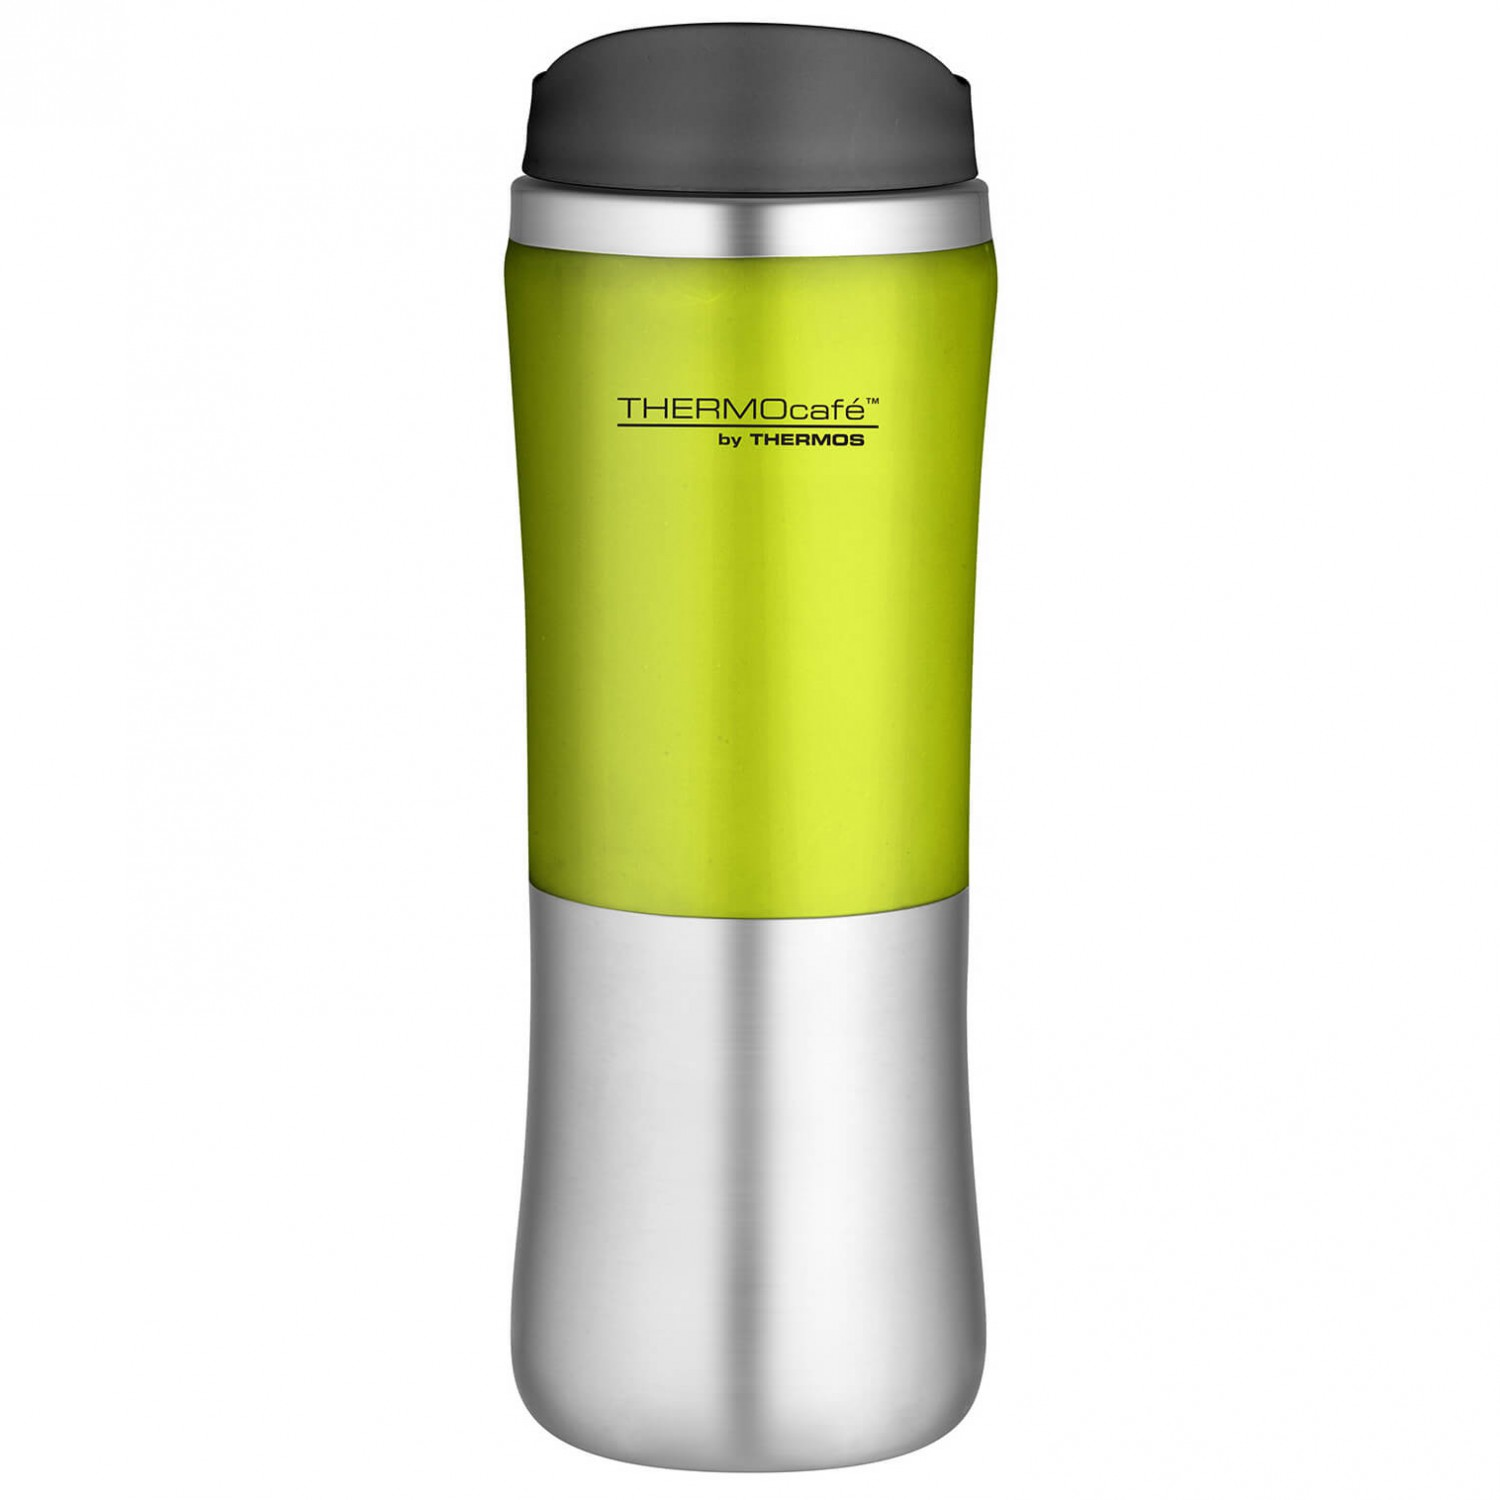 Thermos Cafe Thermos Thermocafe Brilliant Mug Insulated Mug Buy